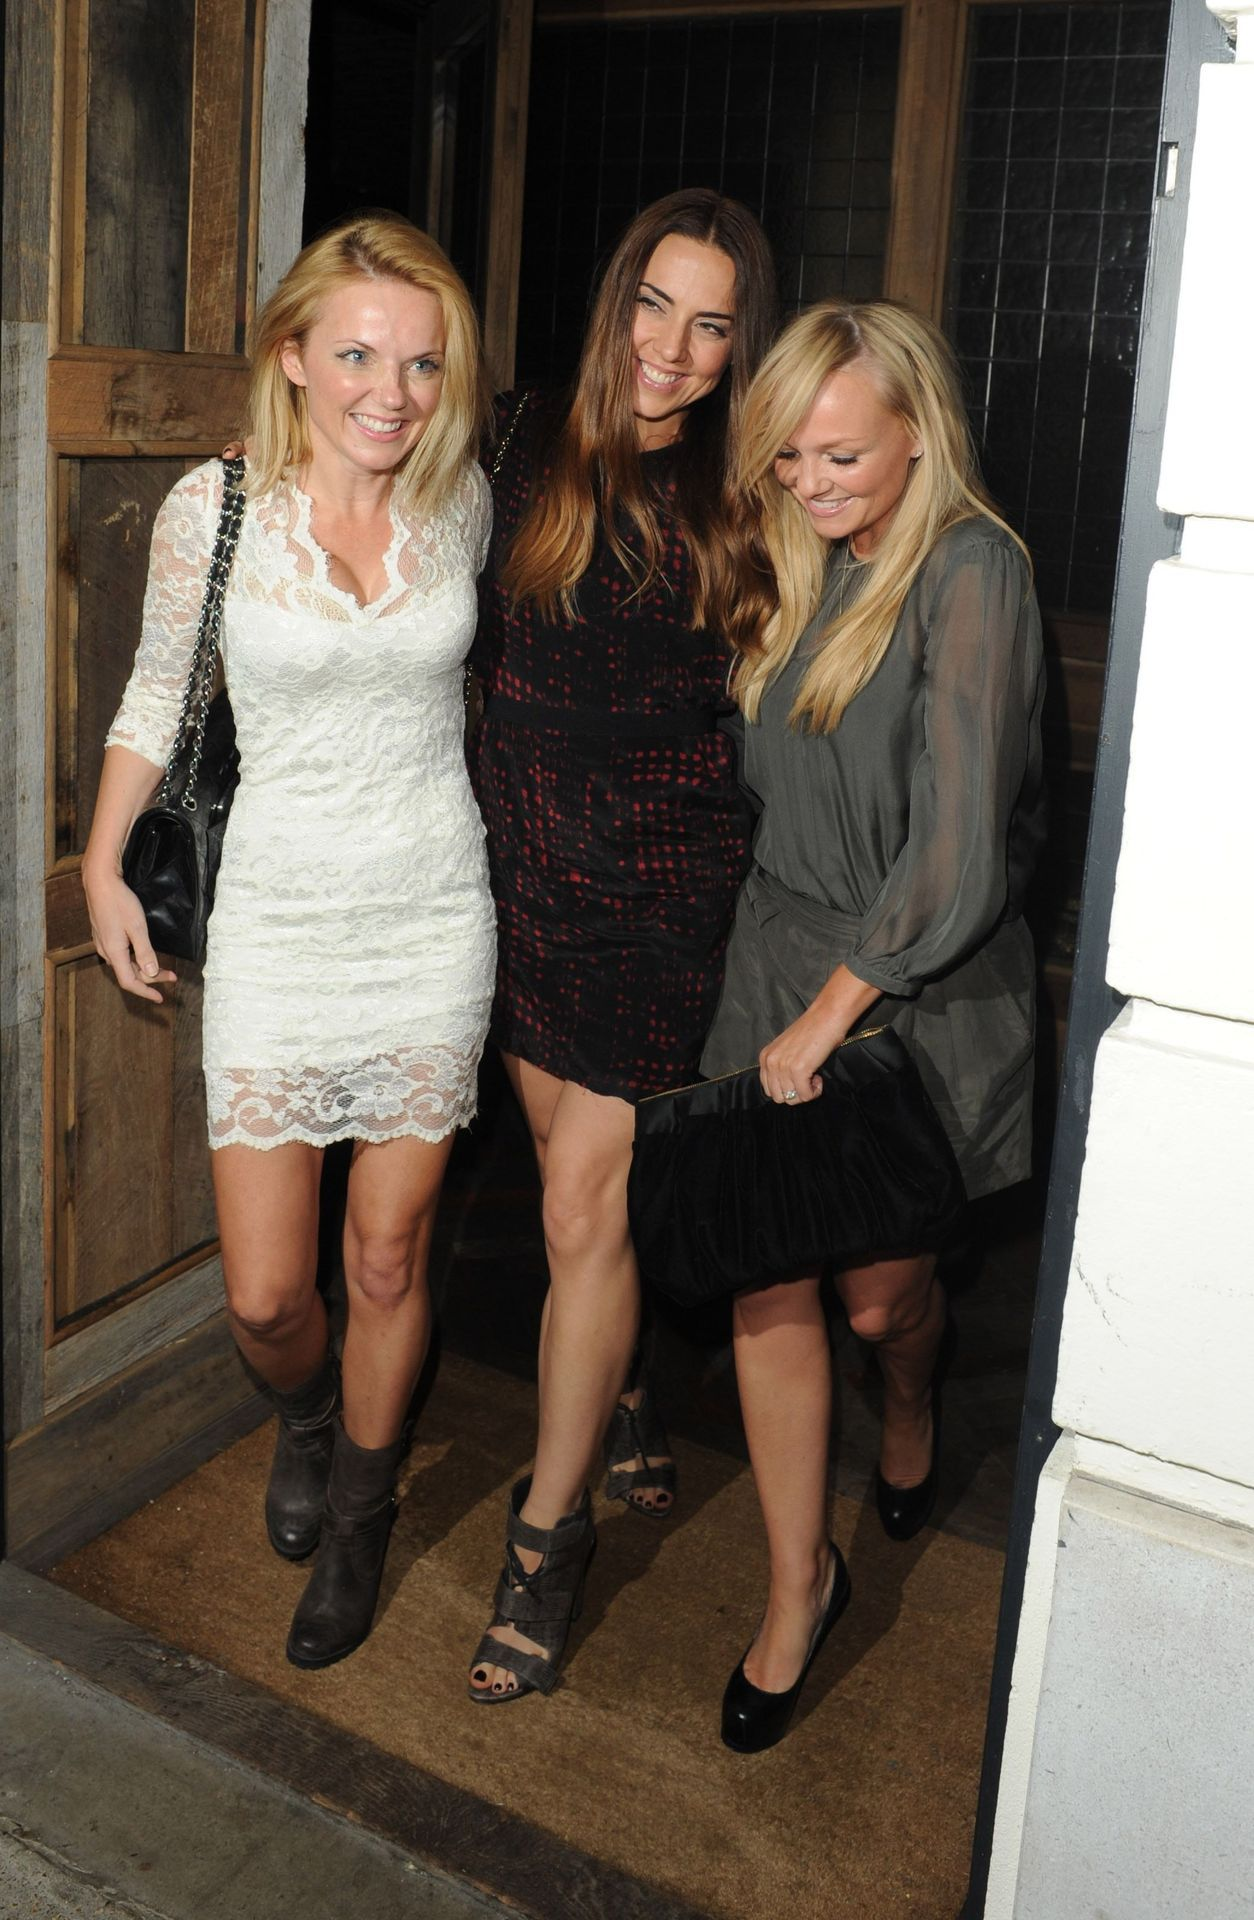 Geri Halliwell, Melanie Chisholm and Emma Bunton in London, September 8th